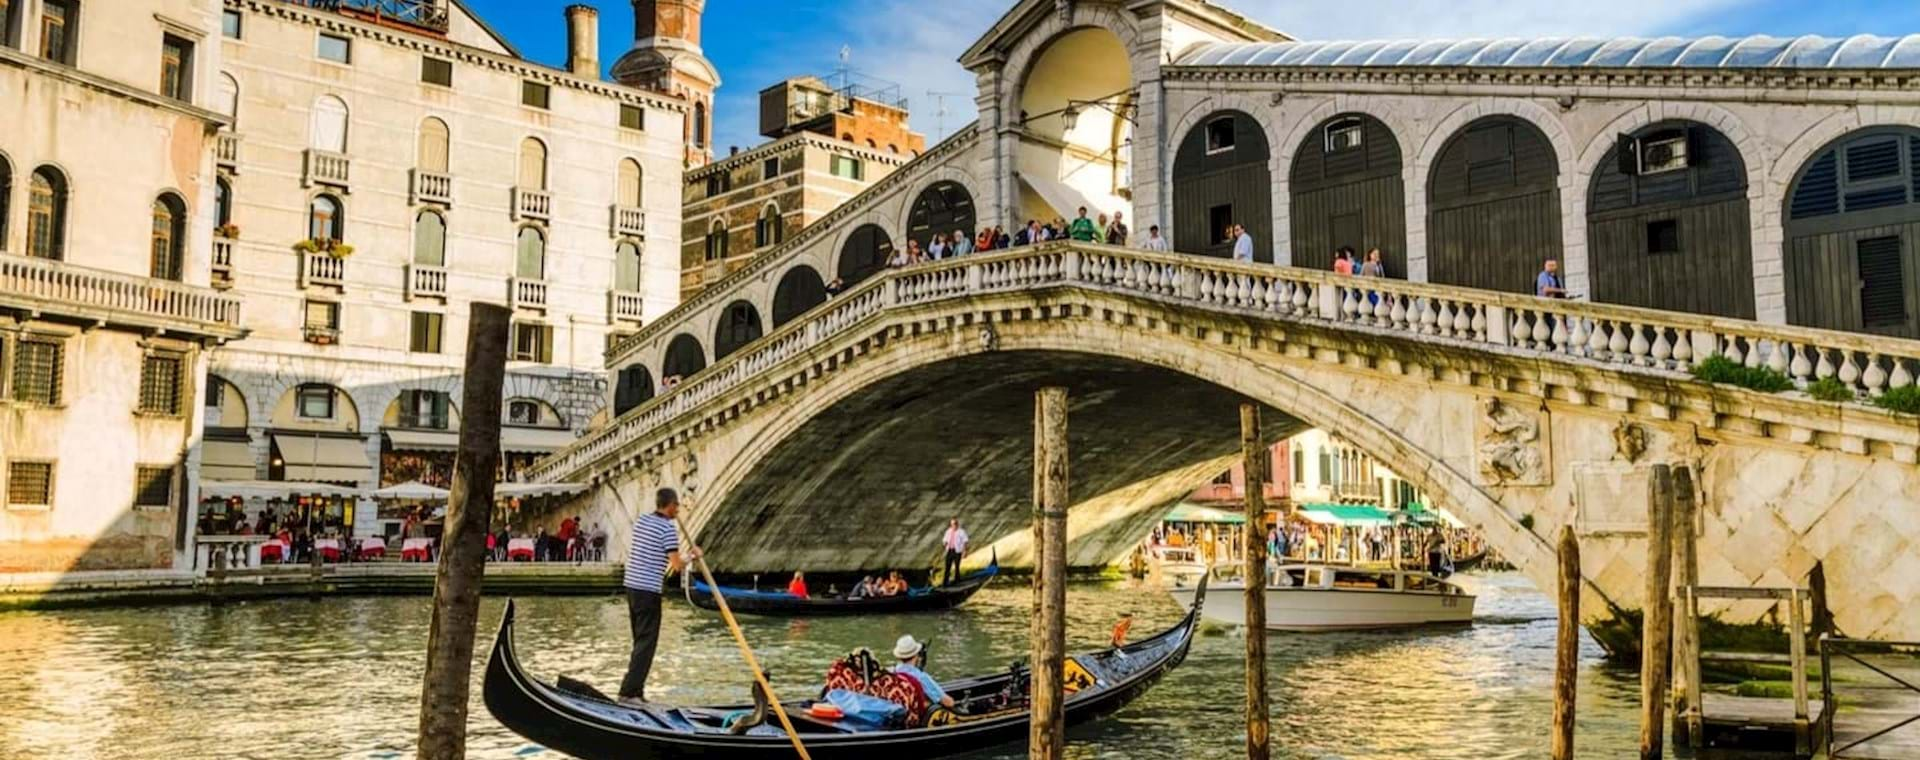 Best of Venice Tour with St. Mark's Basilica and Gondola Ride